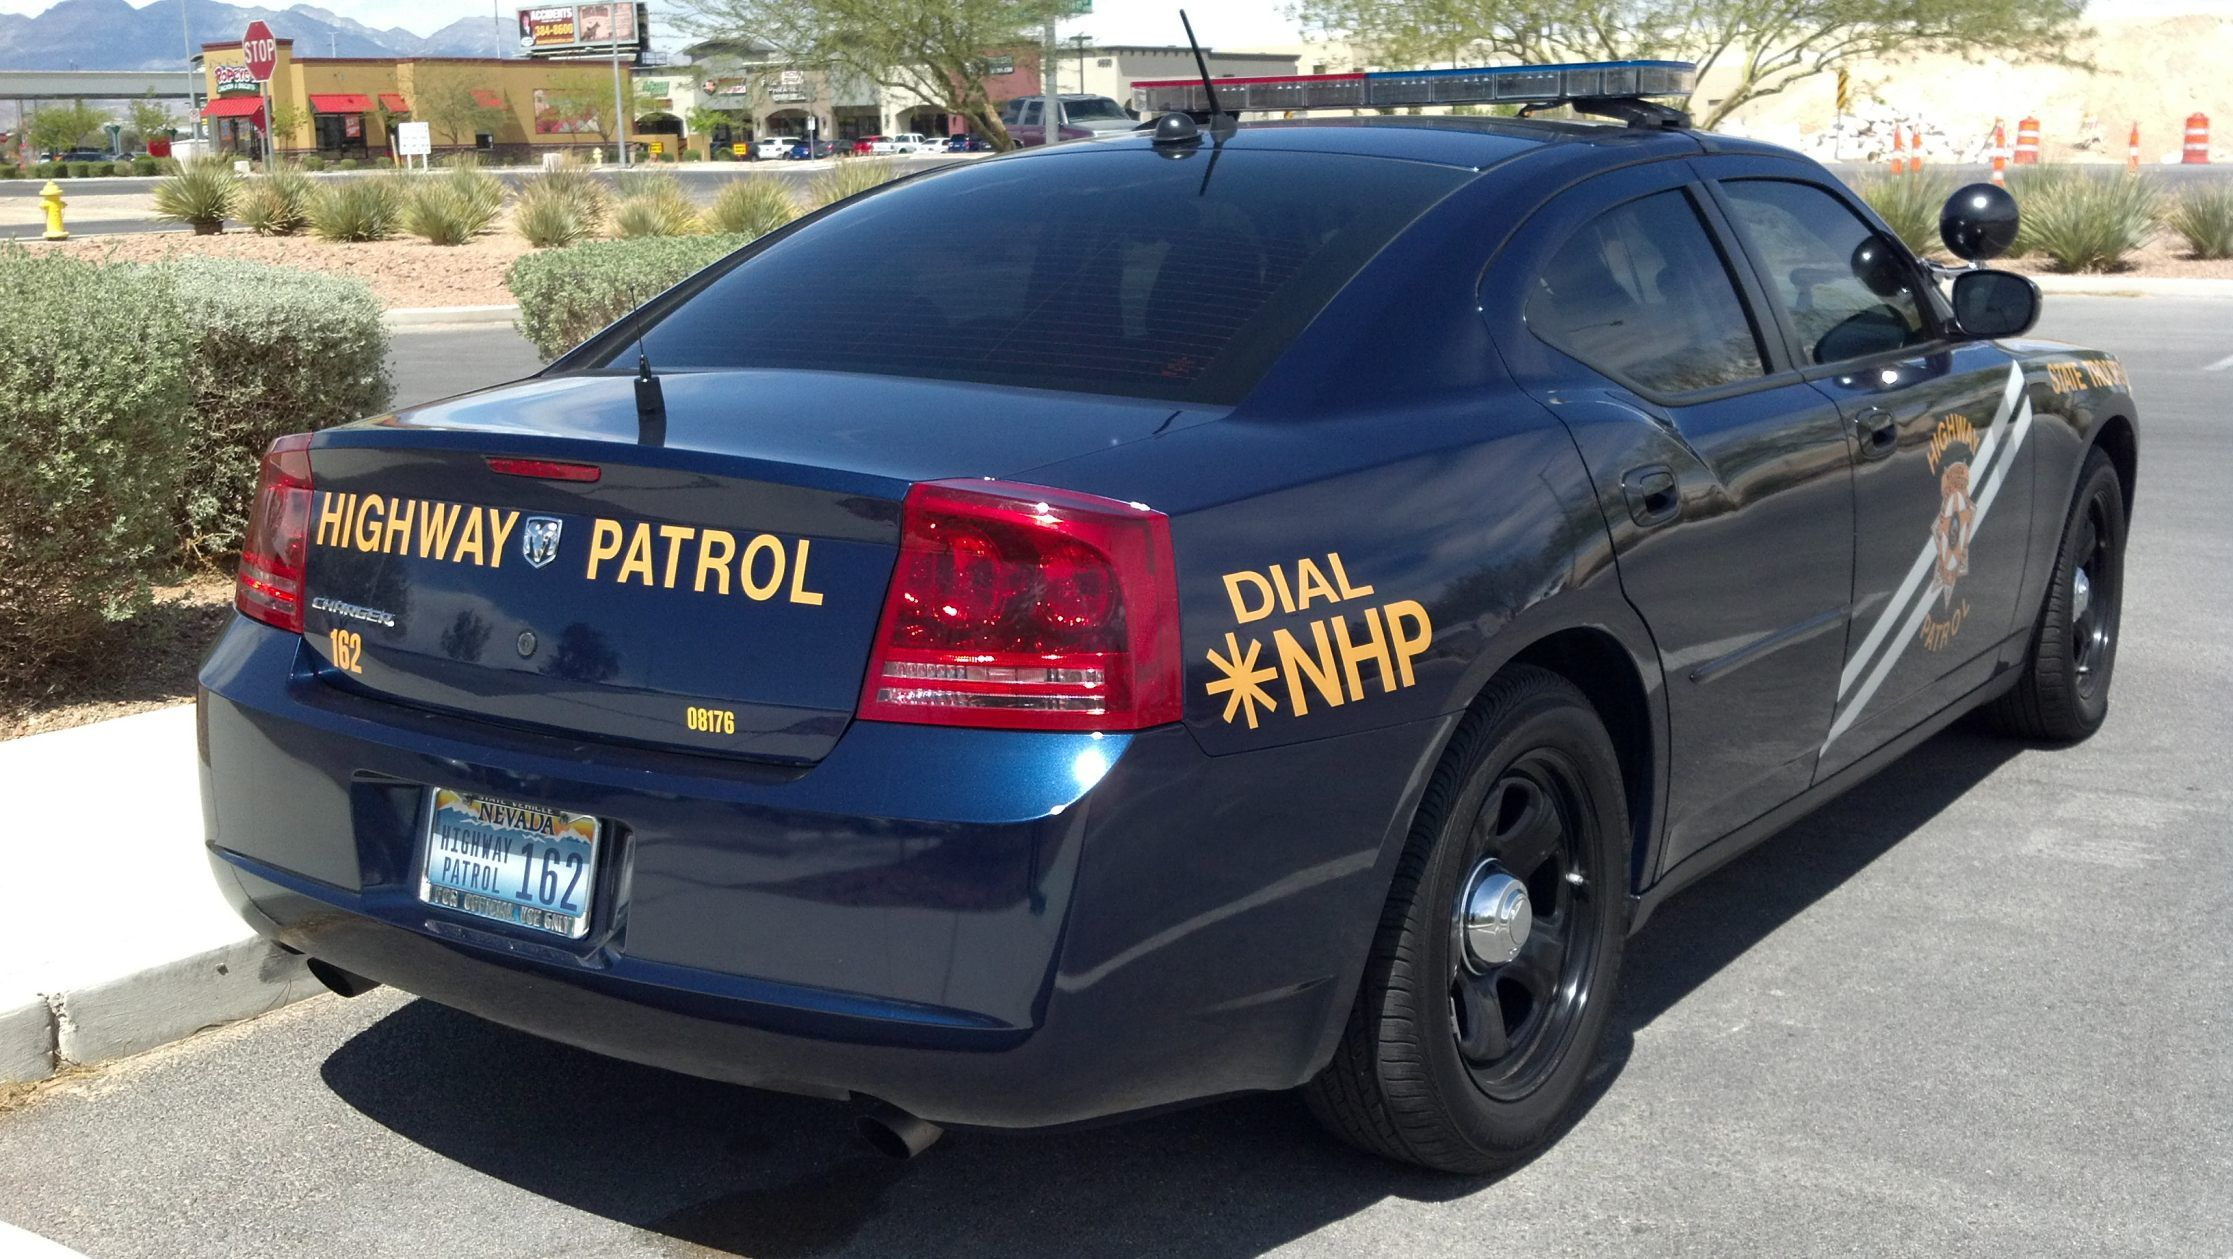 Nevada Highway Patrol 2010 Dodge Charger With Images State